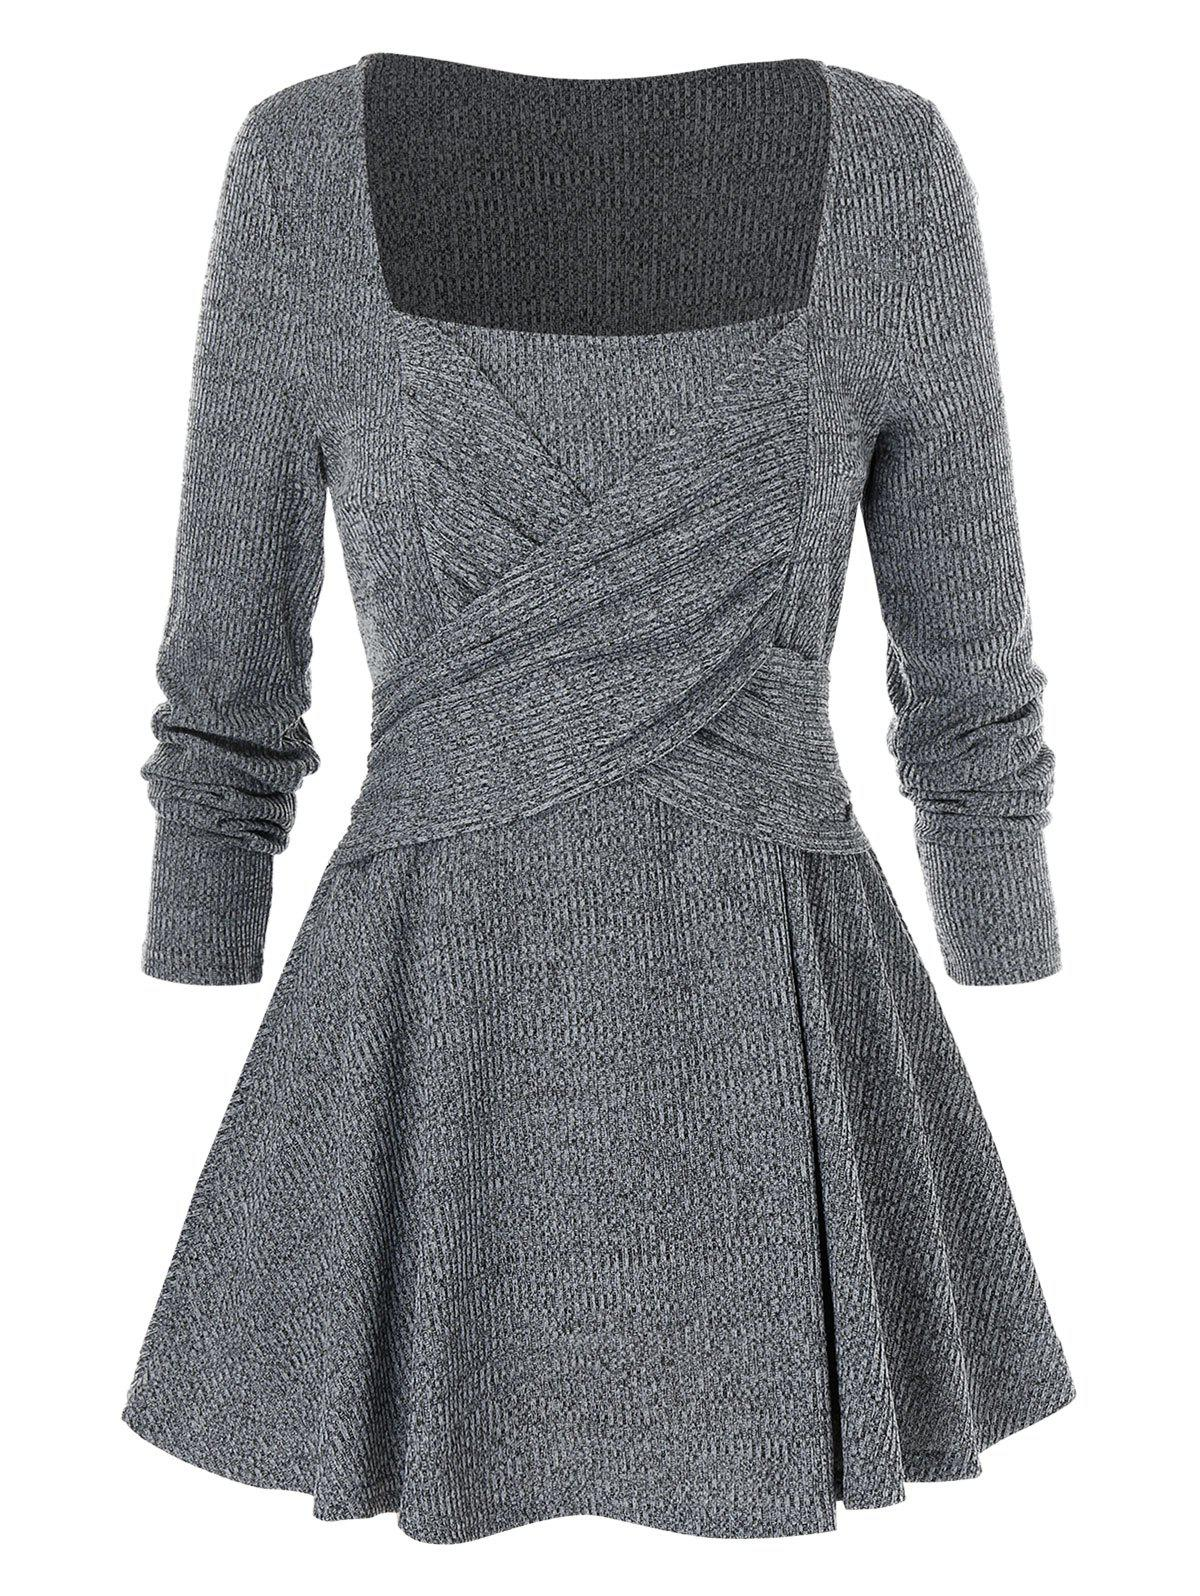 Plus Size Solid Square Collar Tunic Sweater - DARK GRAY 4X